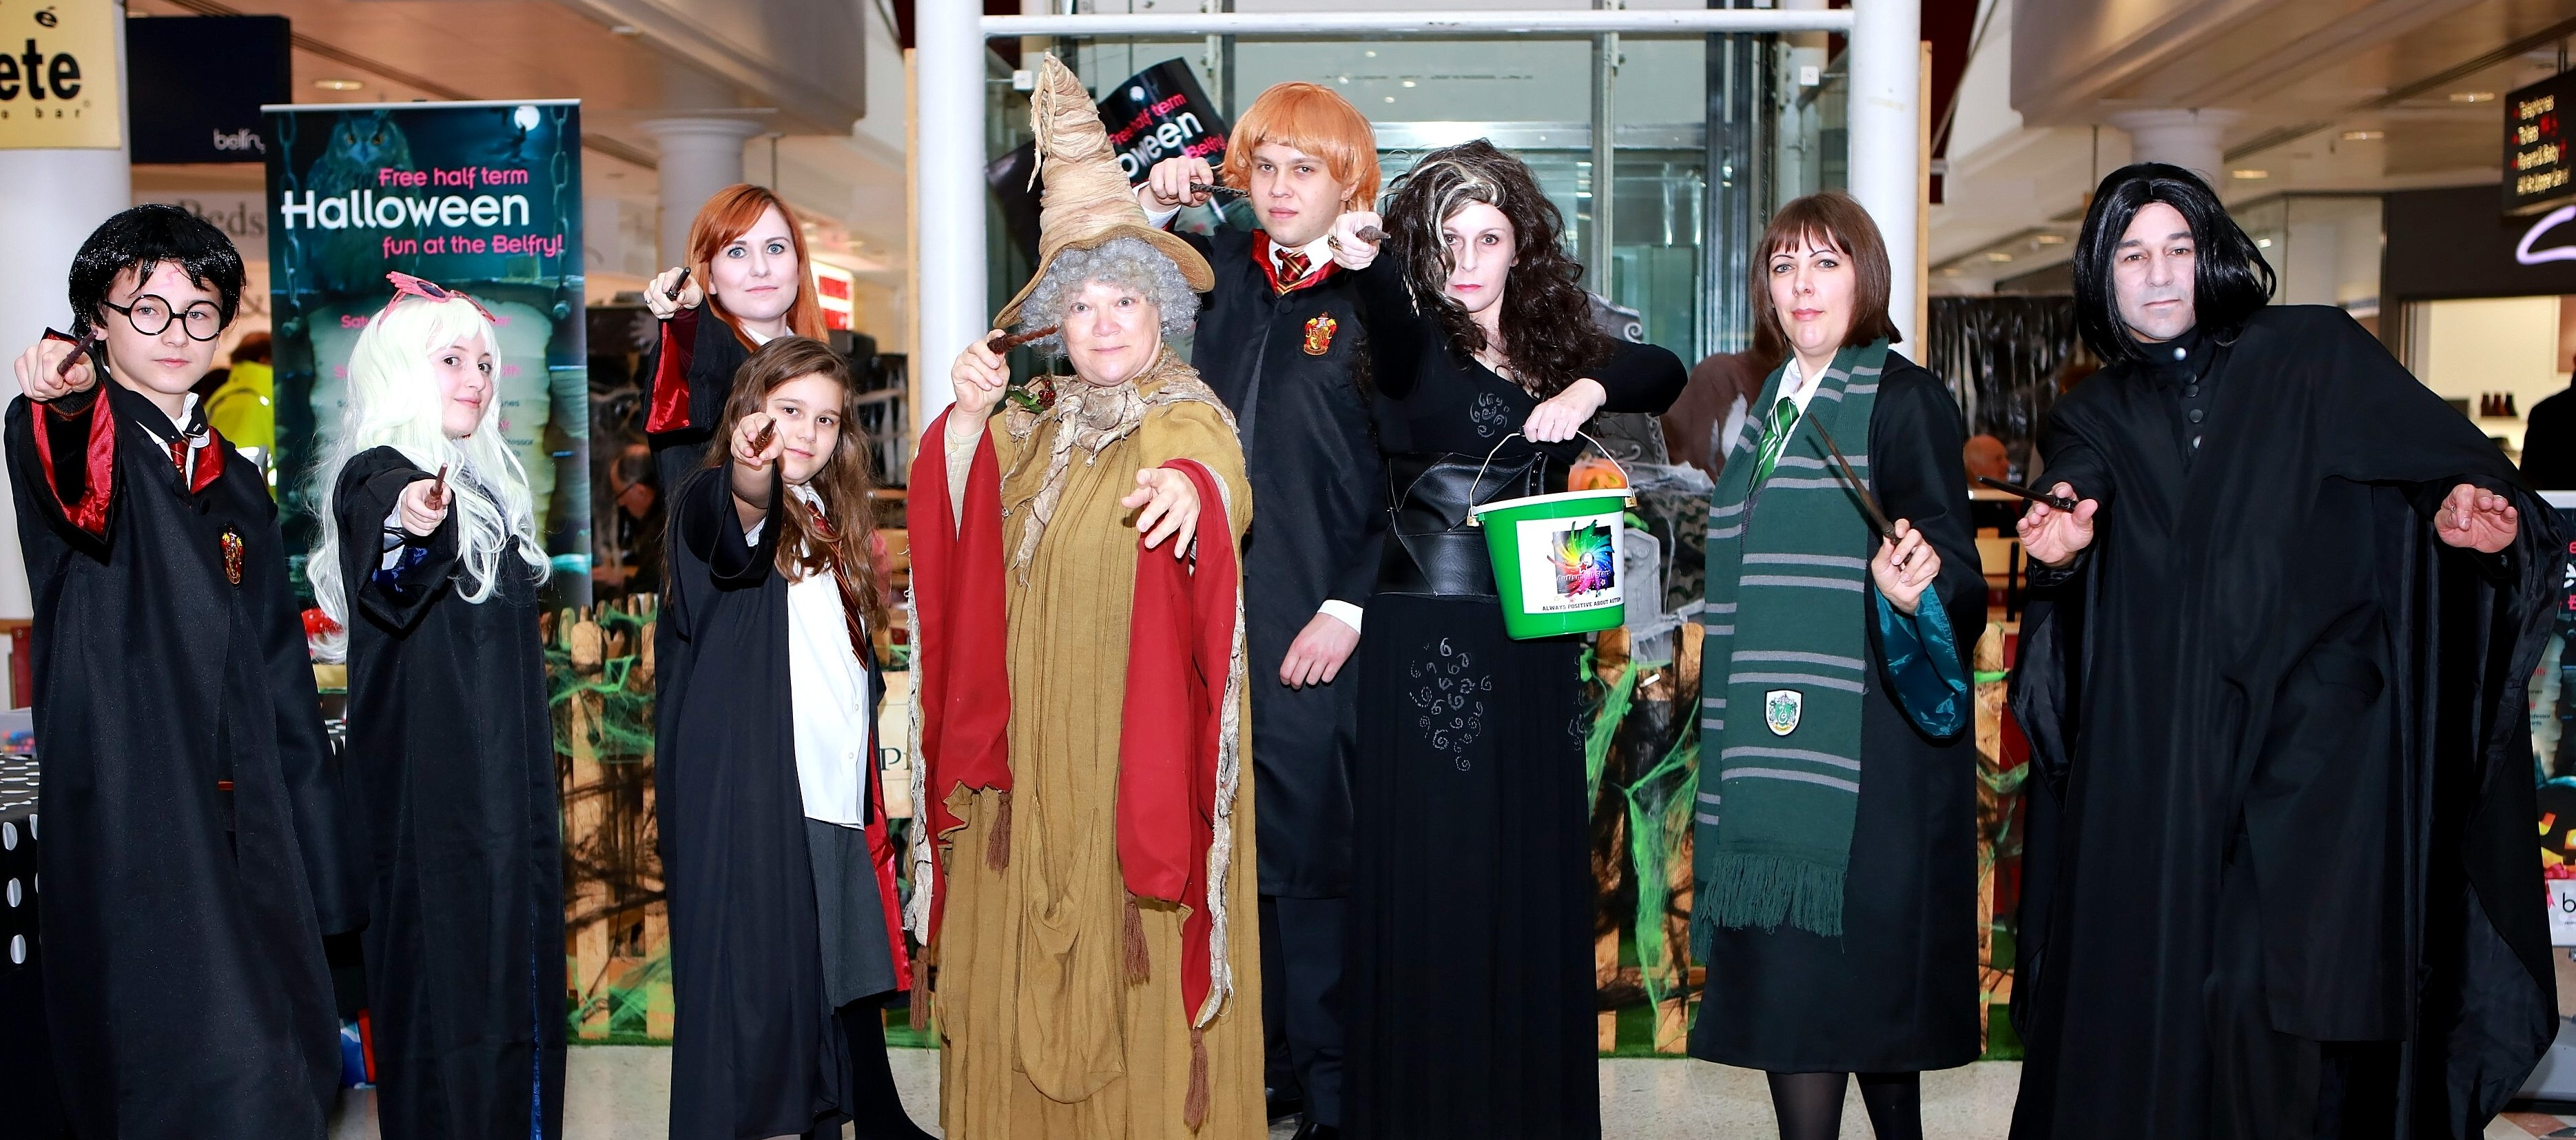 Harry Potter, Aspergers, autism, Autism All Stars, autism awareness, characters, charity, cinema, Cineworld, cosplay, diversity, events, sussex, crawley, west sussex,